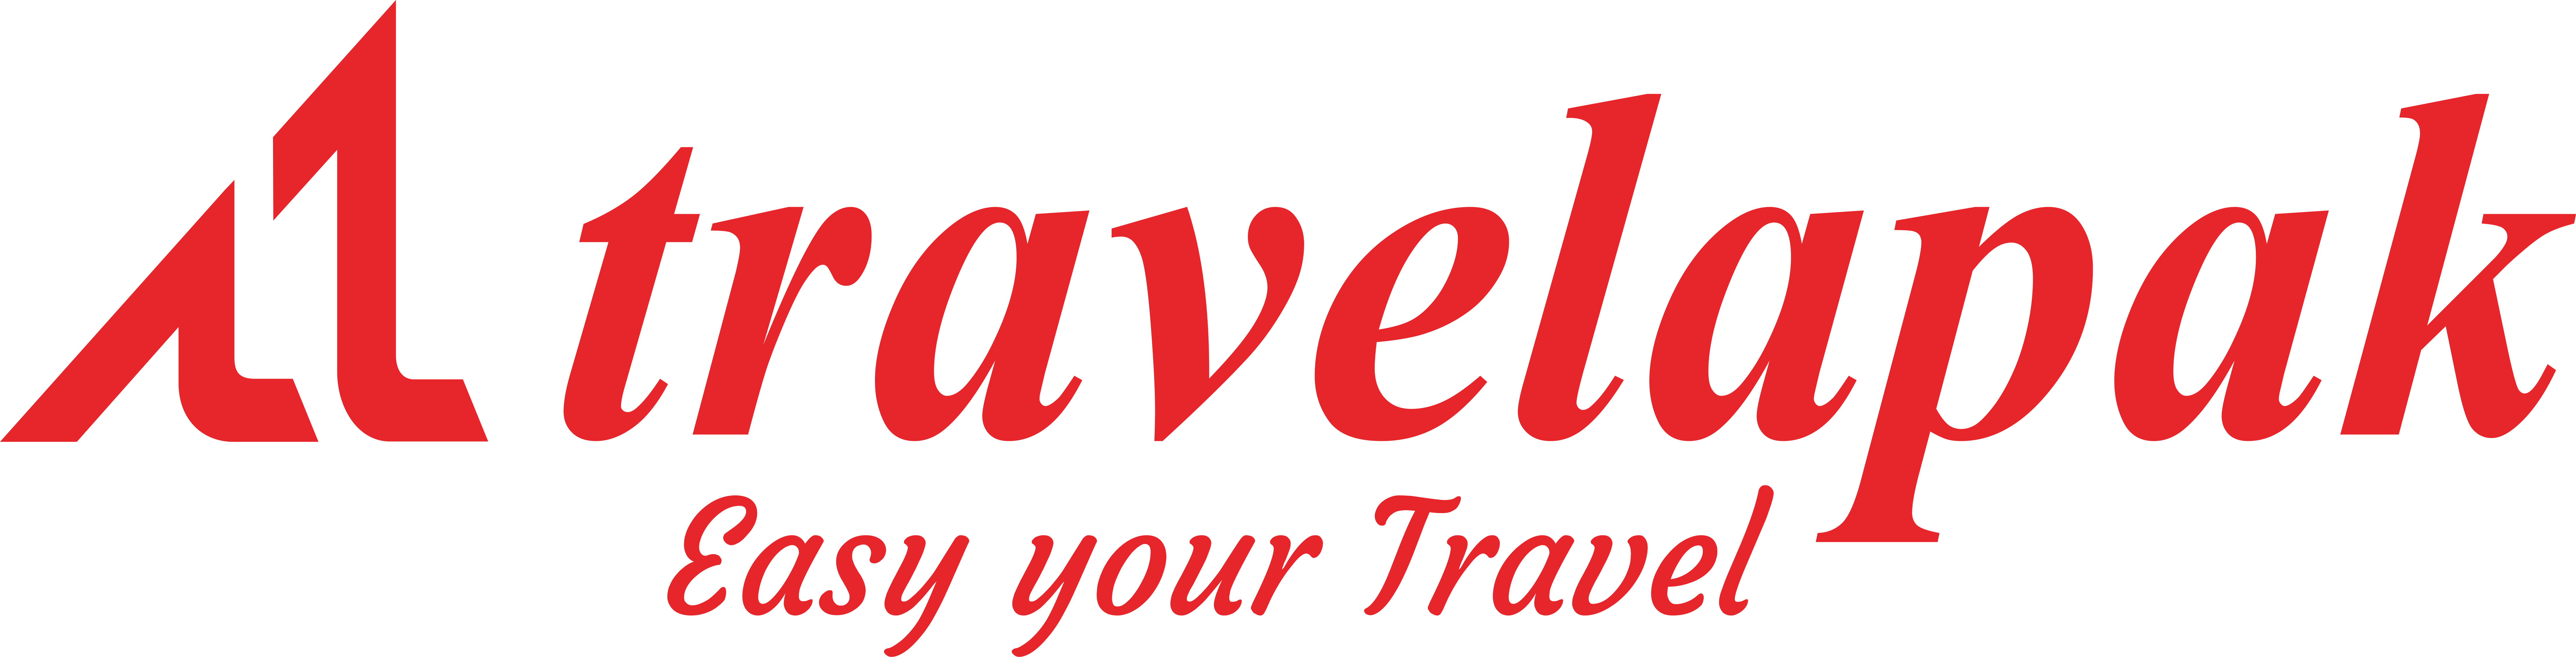 all travelapak